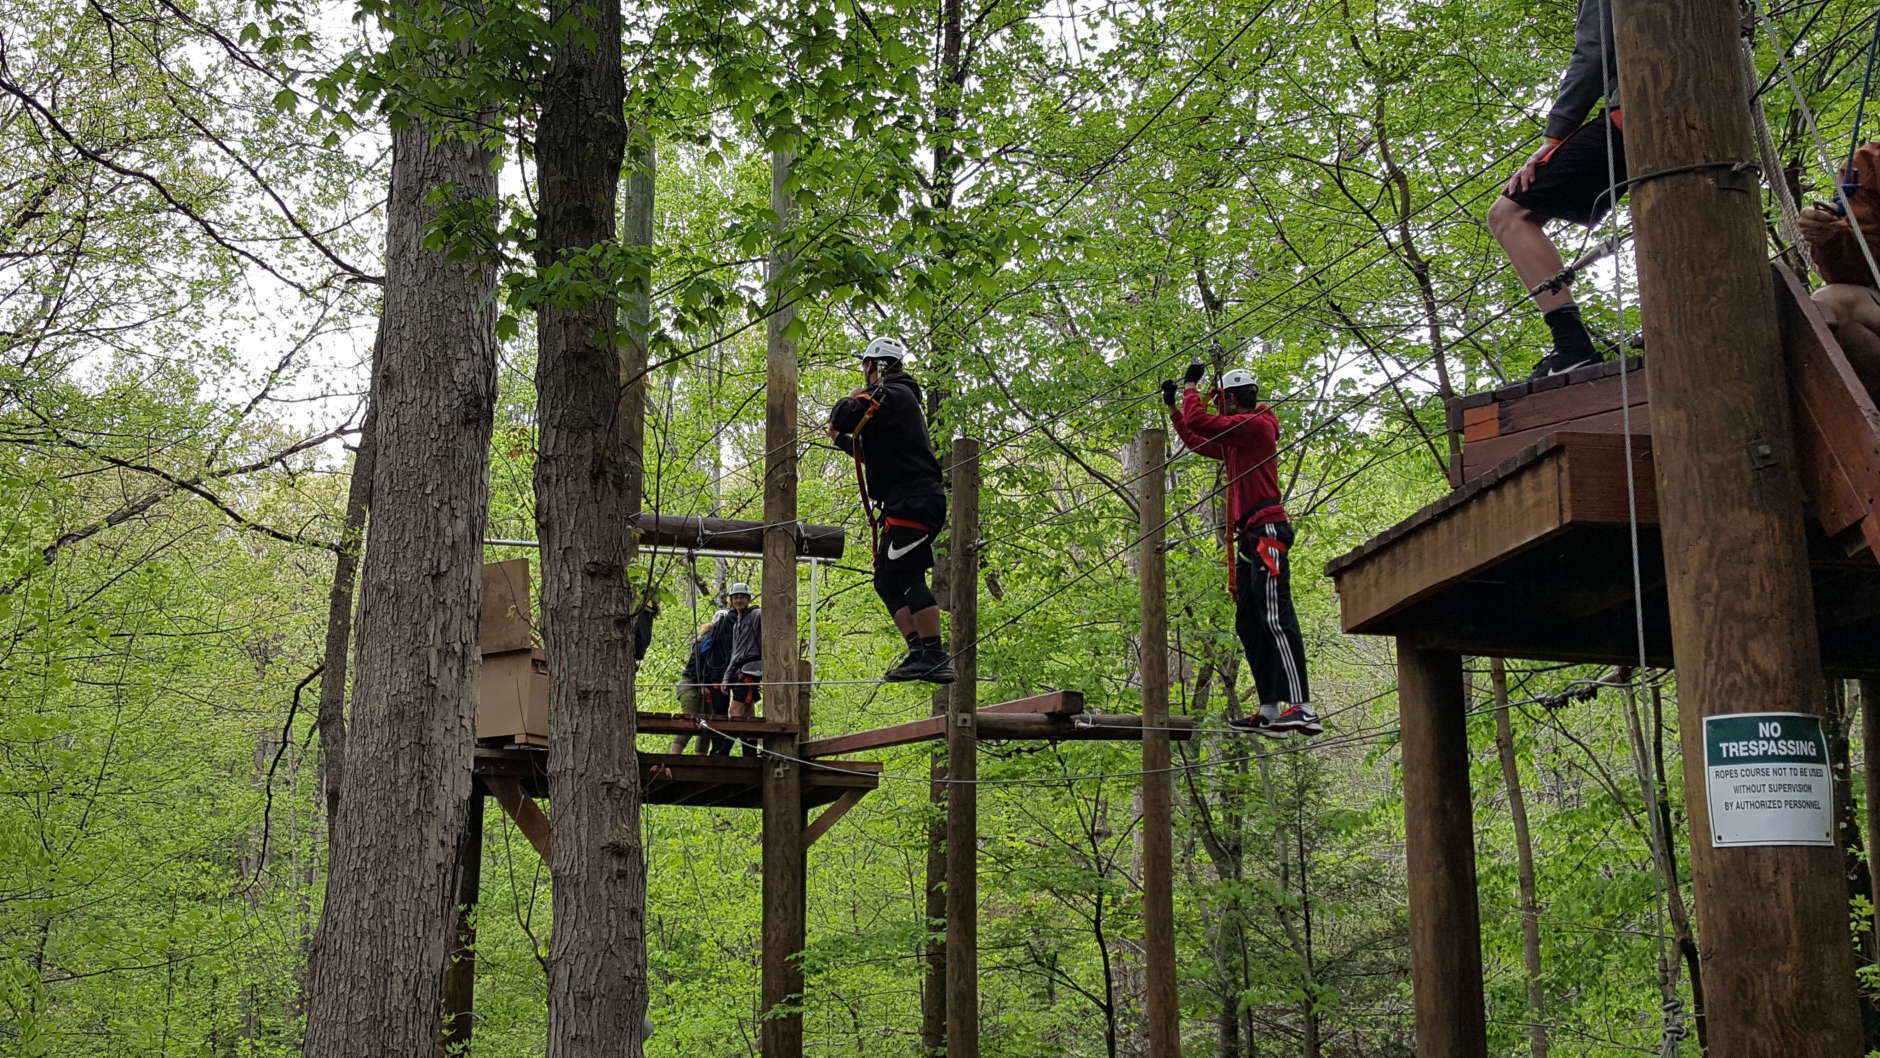 Participants in the inaugural Global STEM Challenges Program class at Thomas A. Edison High School develop team-building skills at Hemlock Regional Park. (Courtesy Scott Settar)